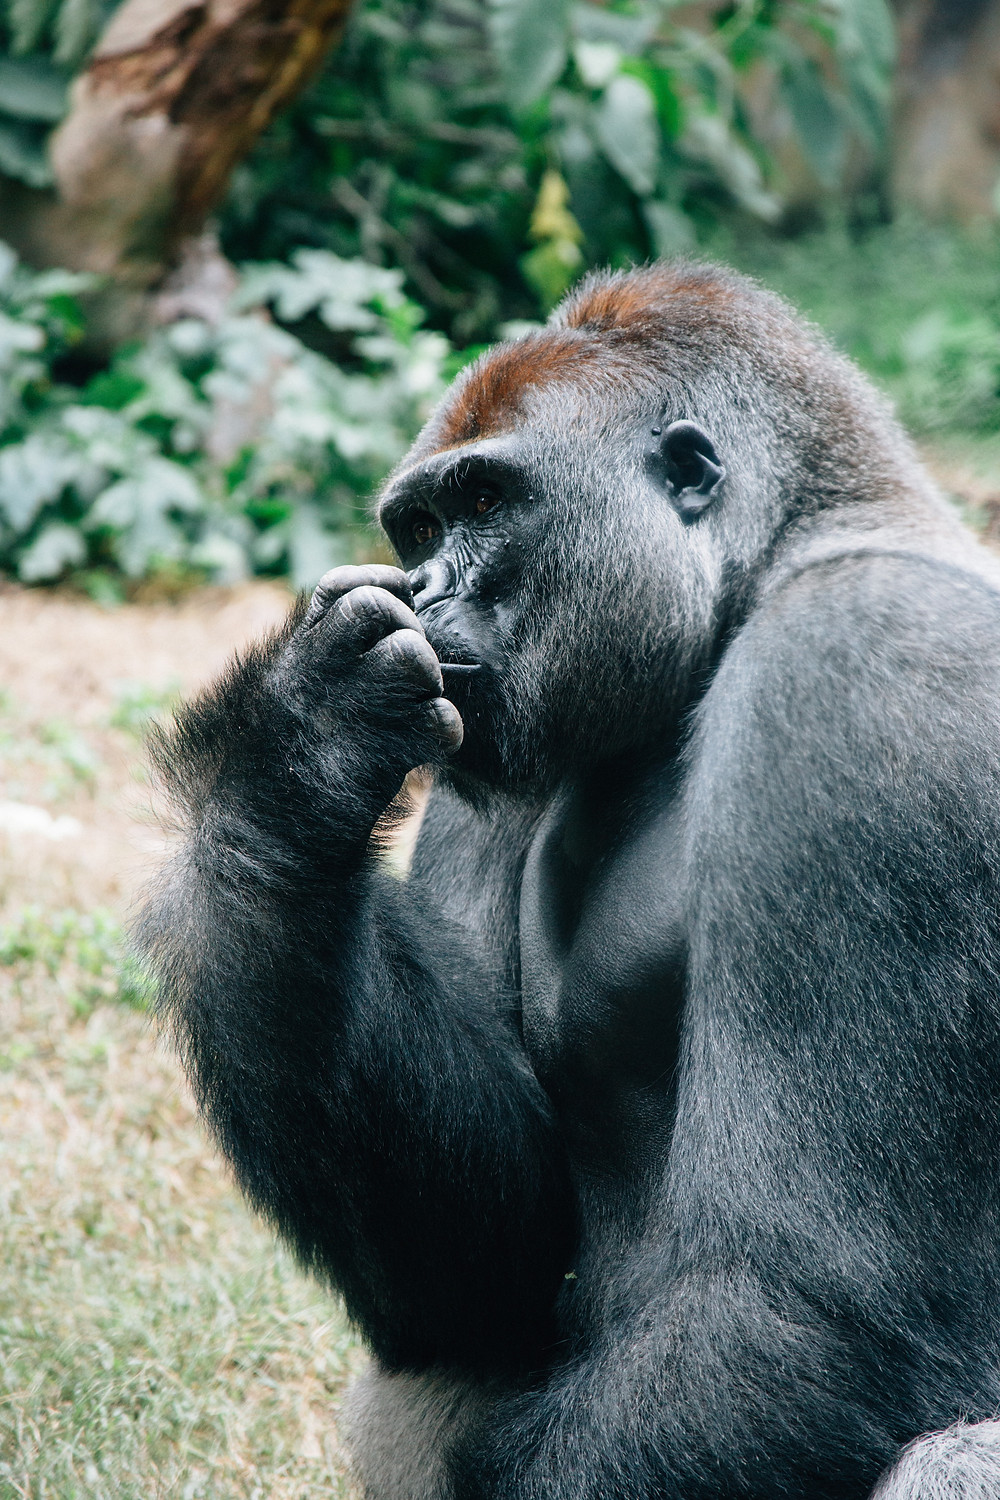 A gorilla doing some deep thinking in the jungles of Rwanda